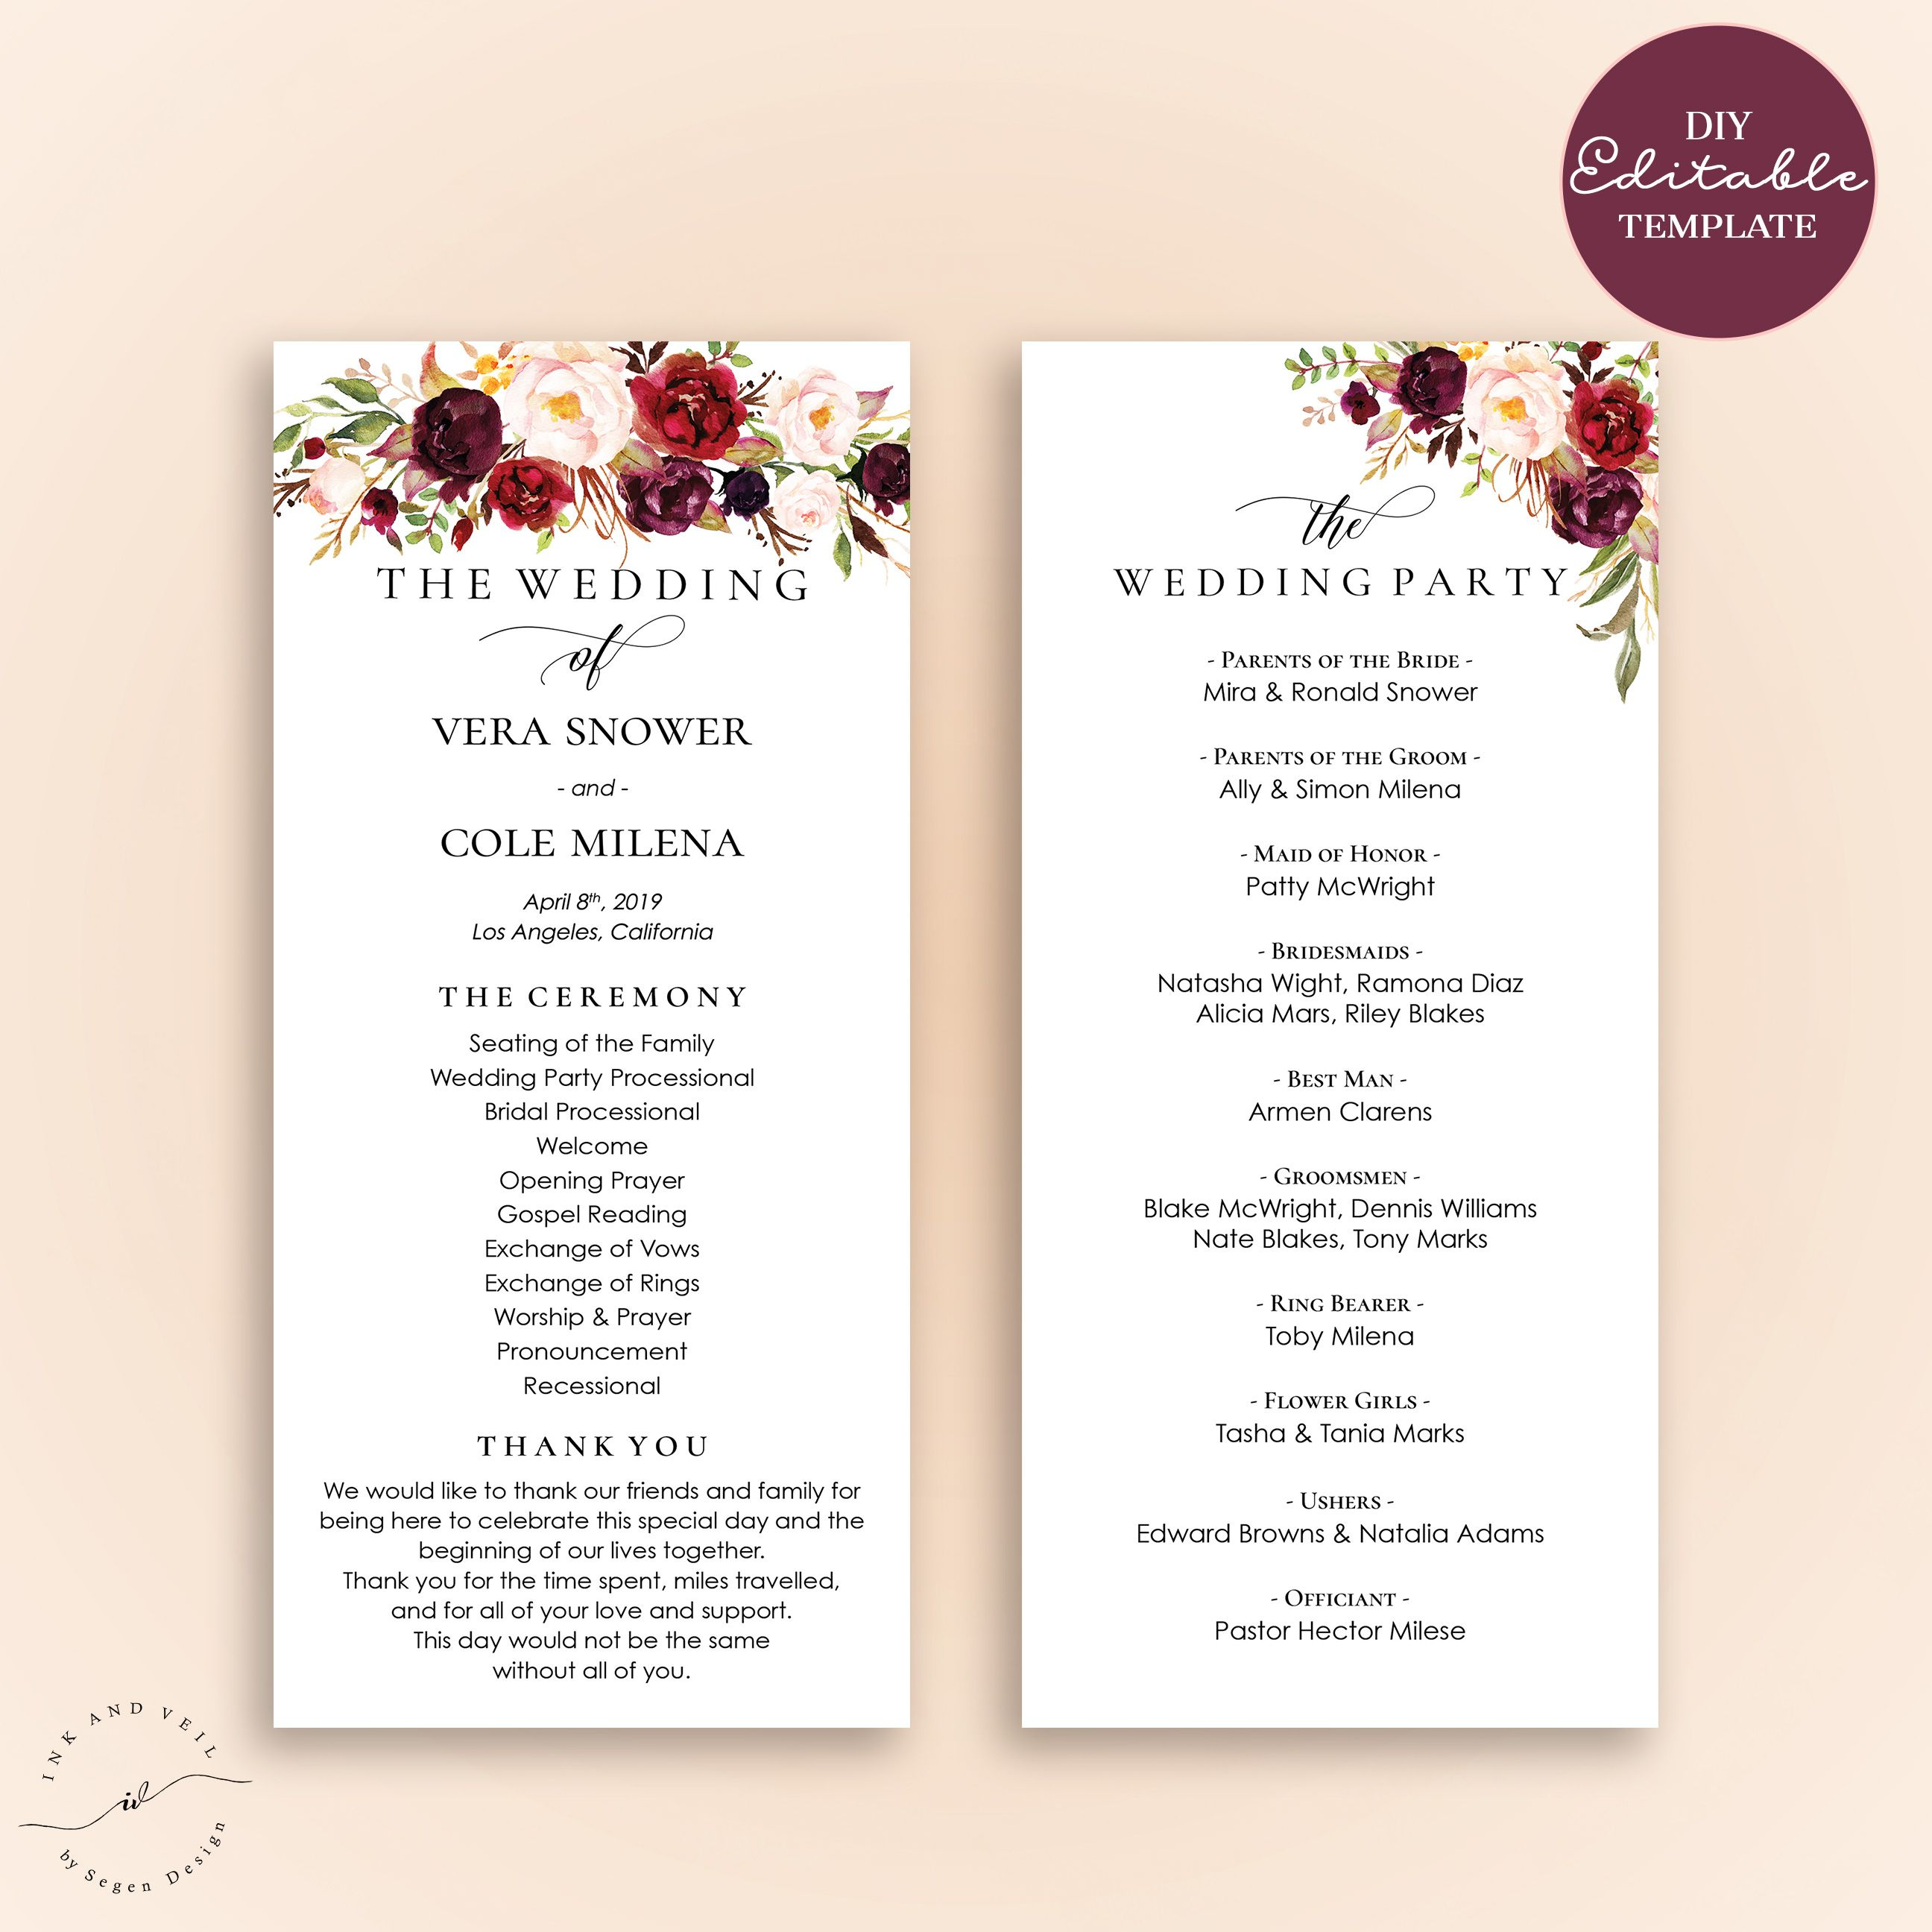 wedding processional order template - editable wedding program template order of ceremony